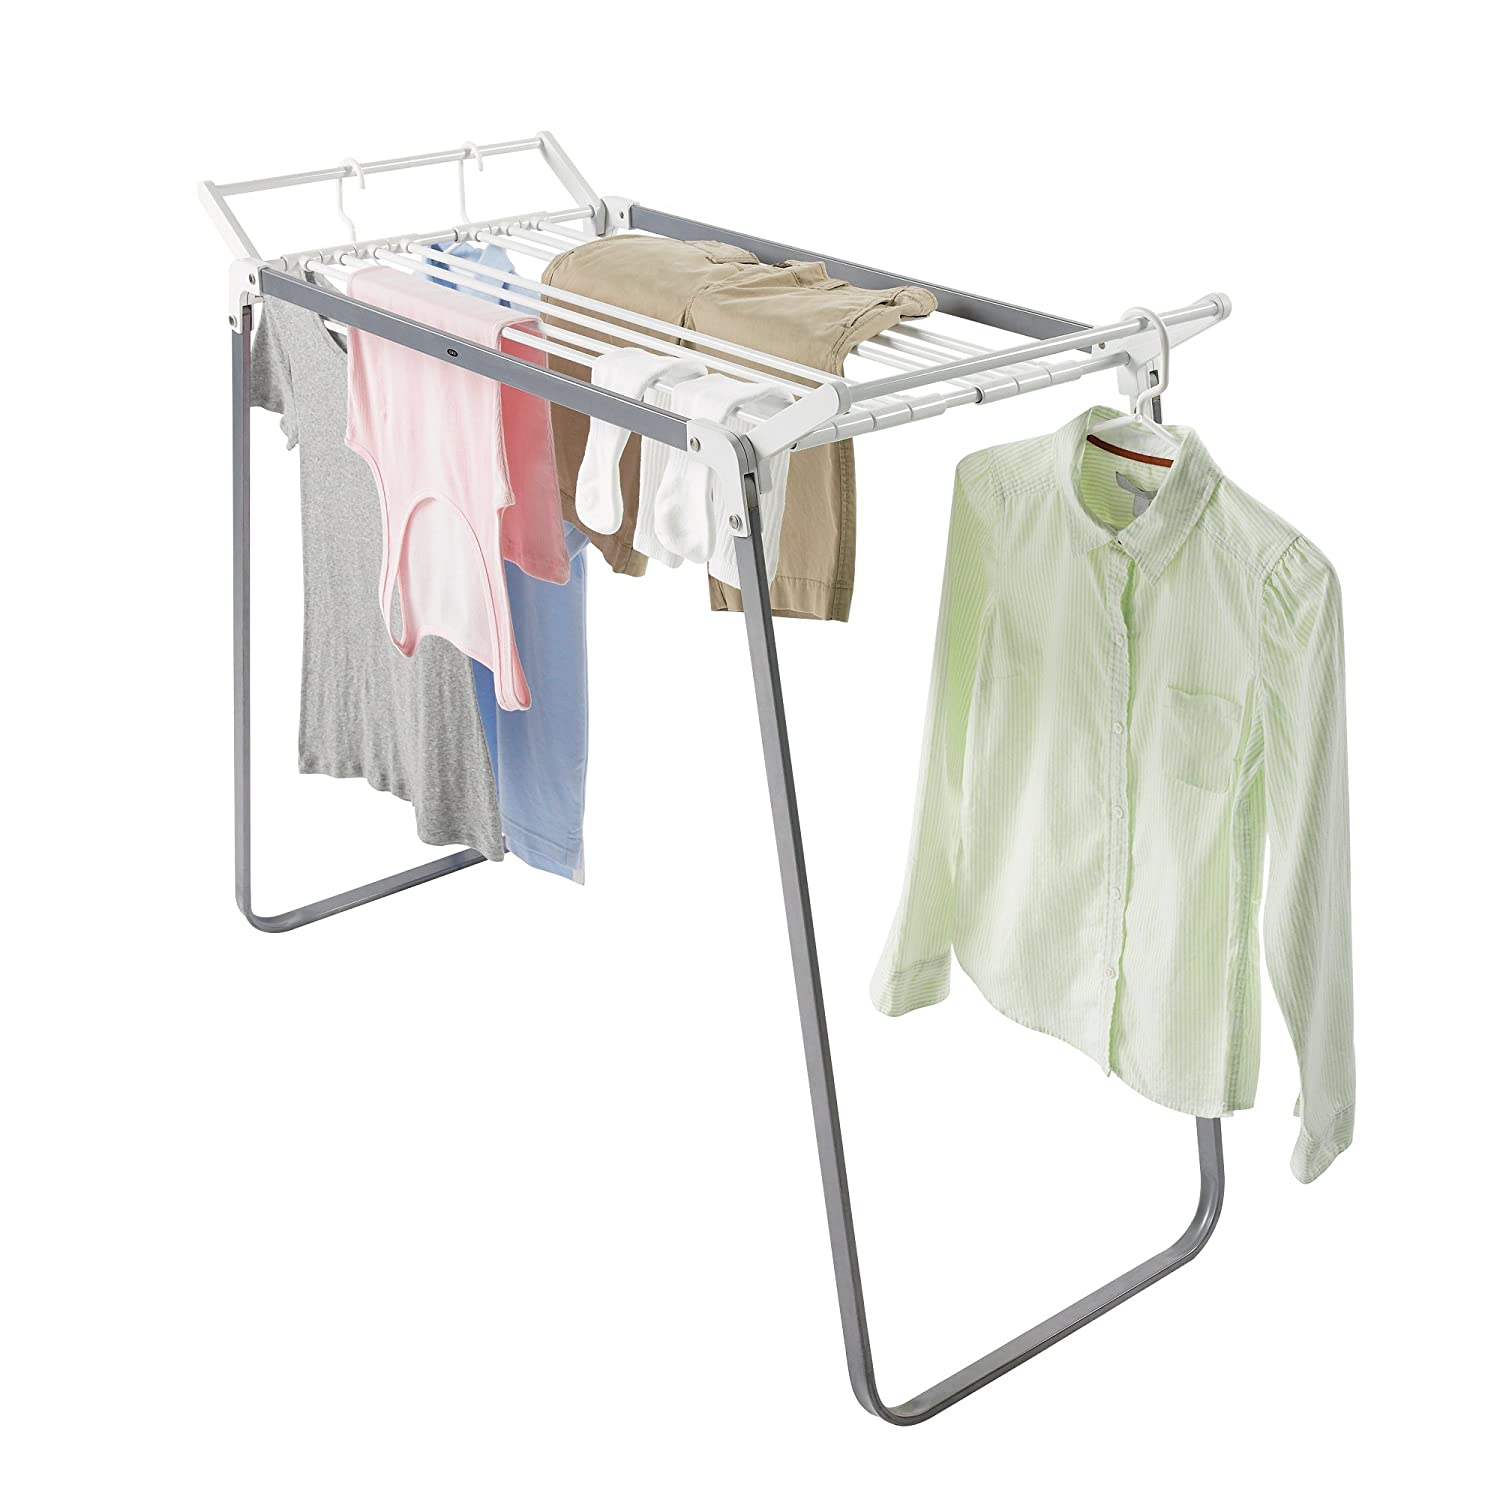 Clothes drying rack for small spaces - Dish racks for small spaces set ...